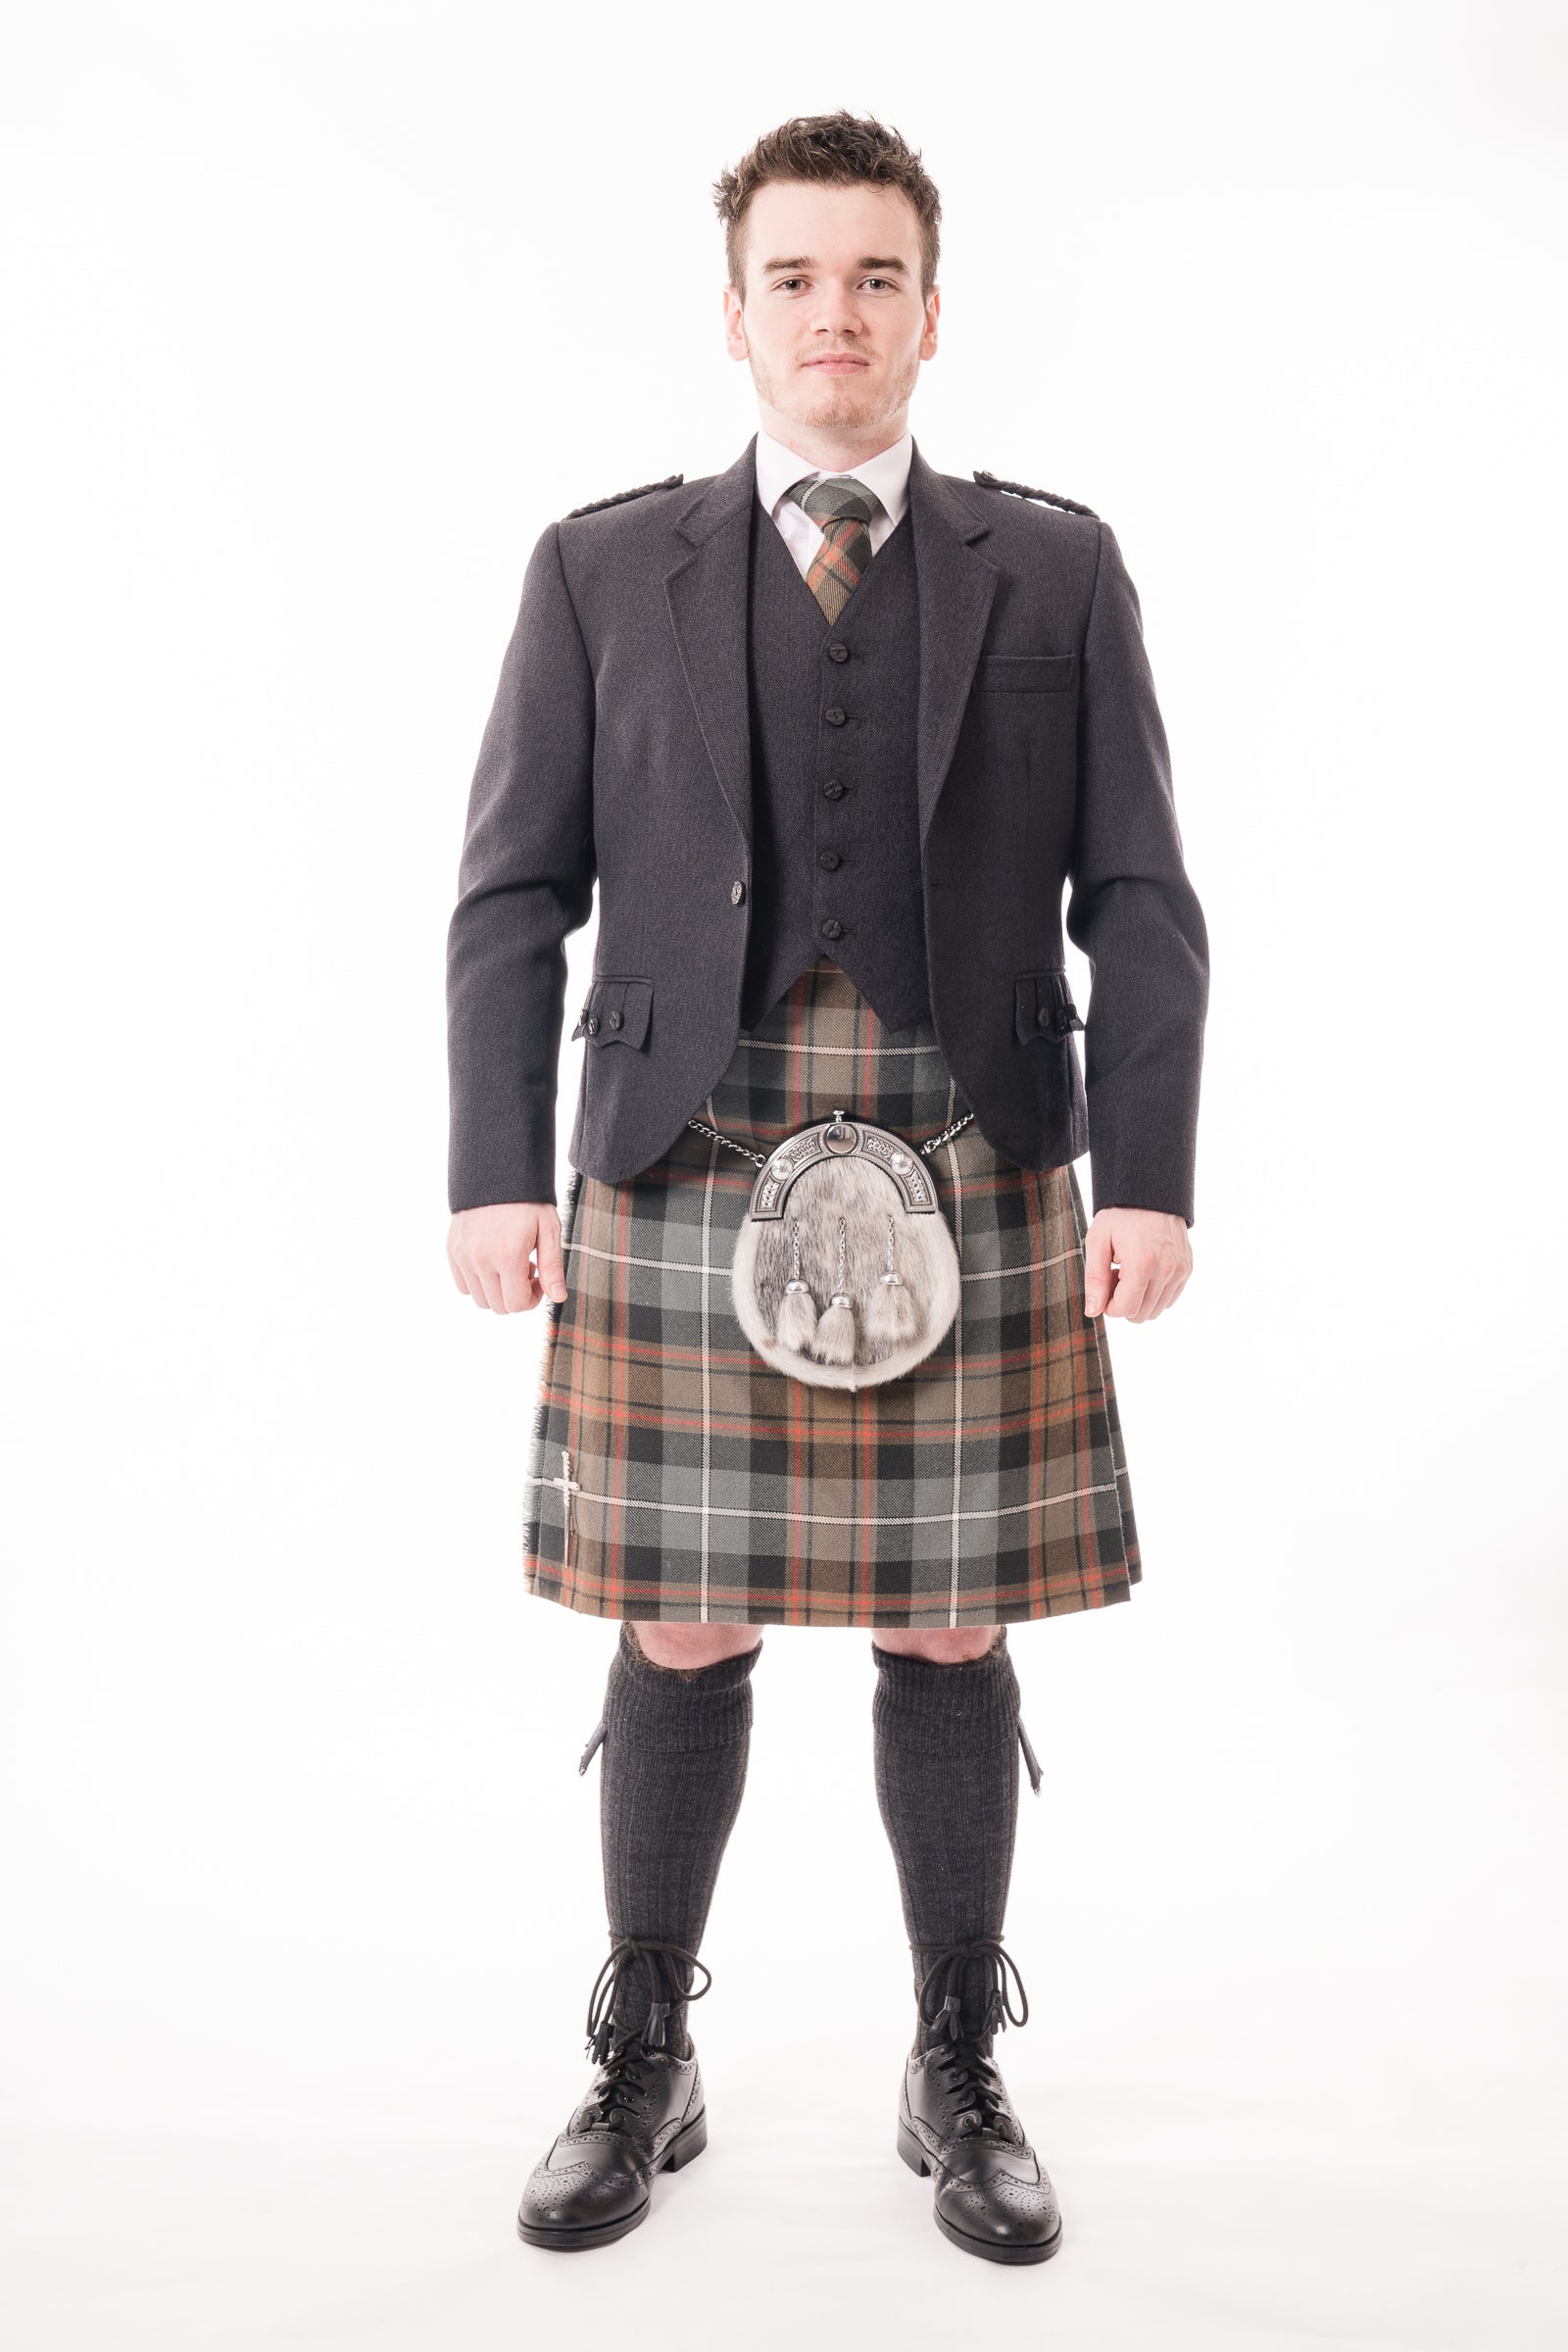 Charcoal crail kilt hire outfit with Weathered MacRae tartan kilt from Anderson Kilts Dumfries